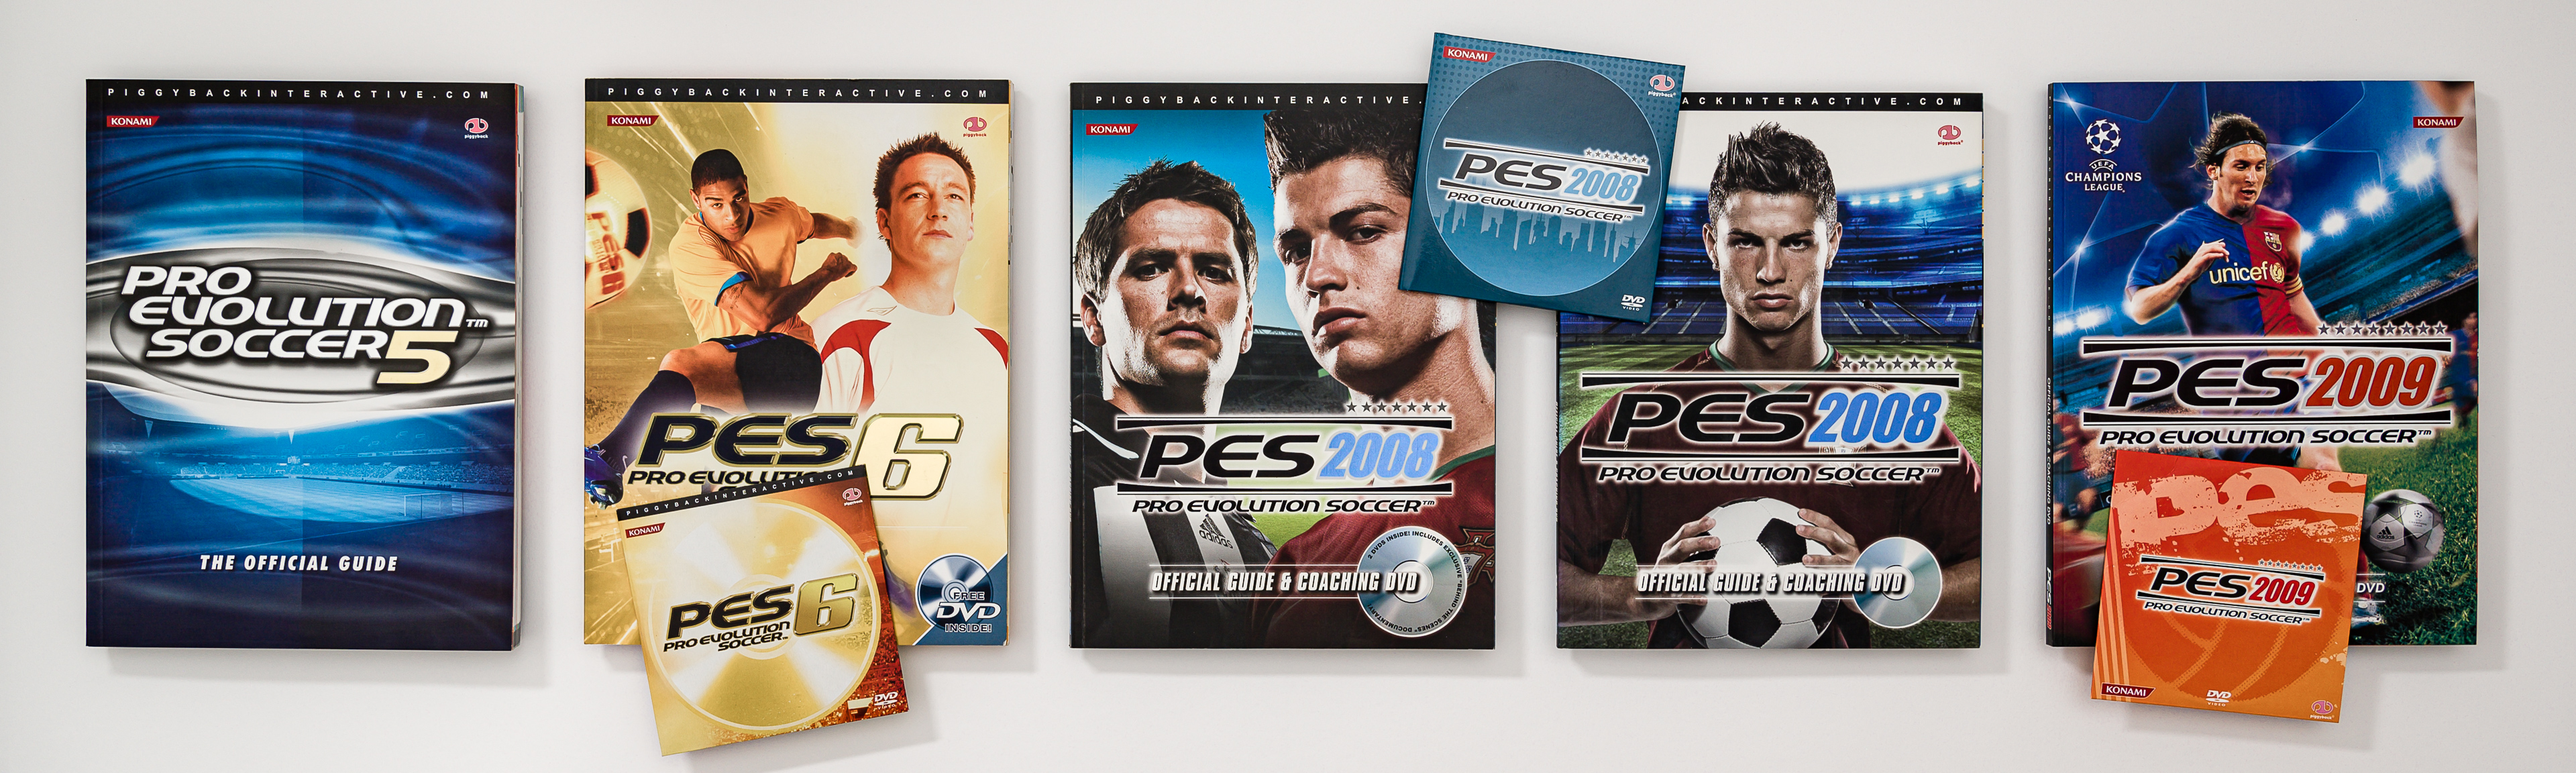 PES-ALL_E_GUIDE-COLLAGE-2